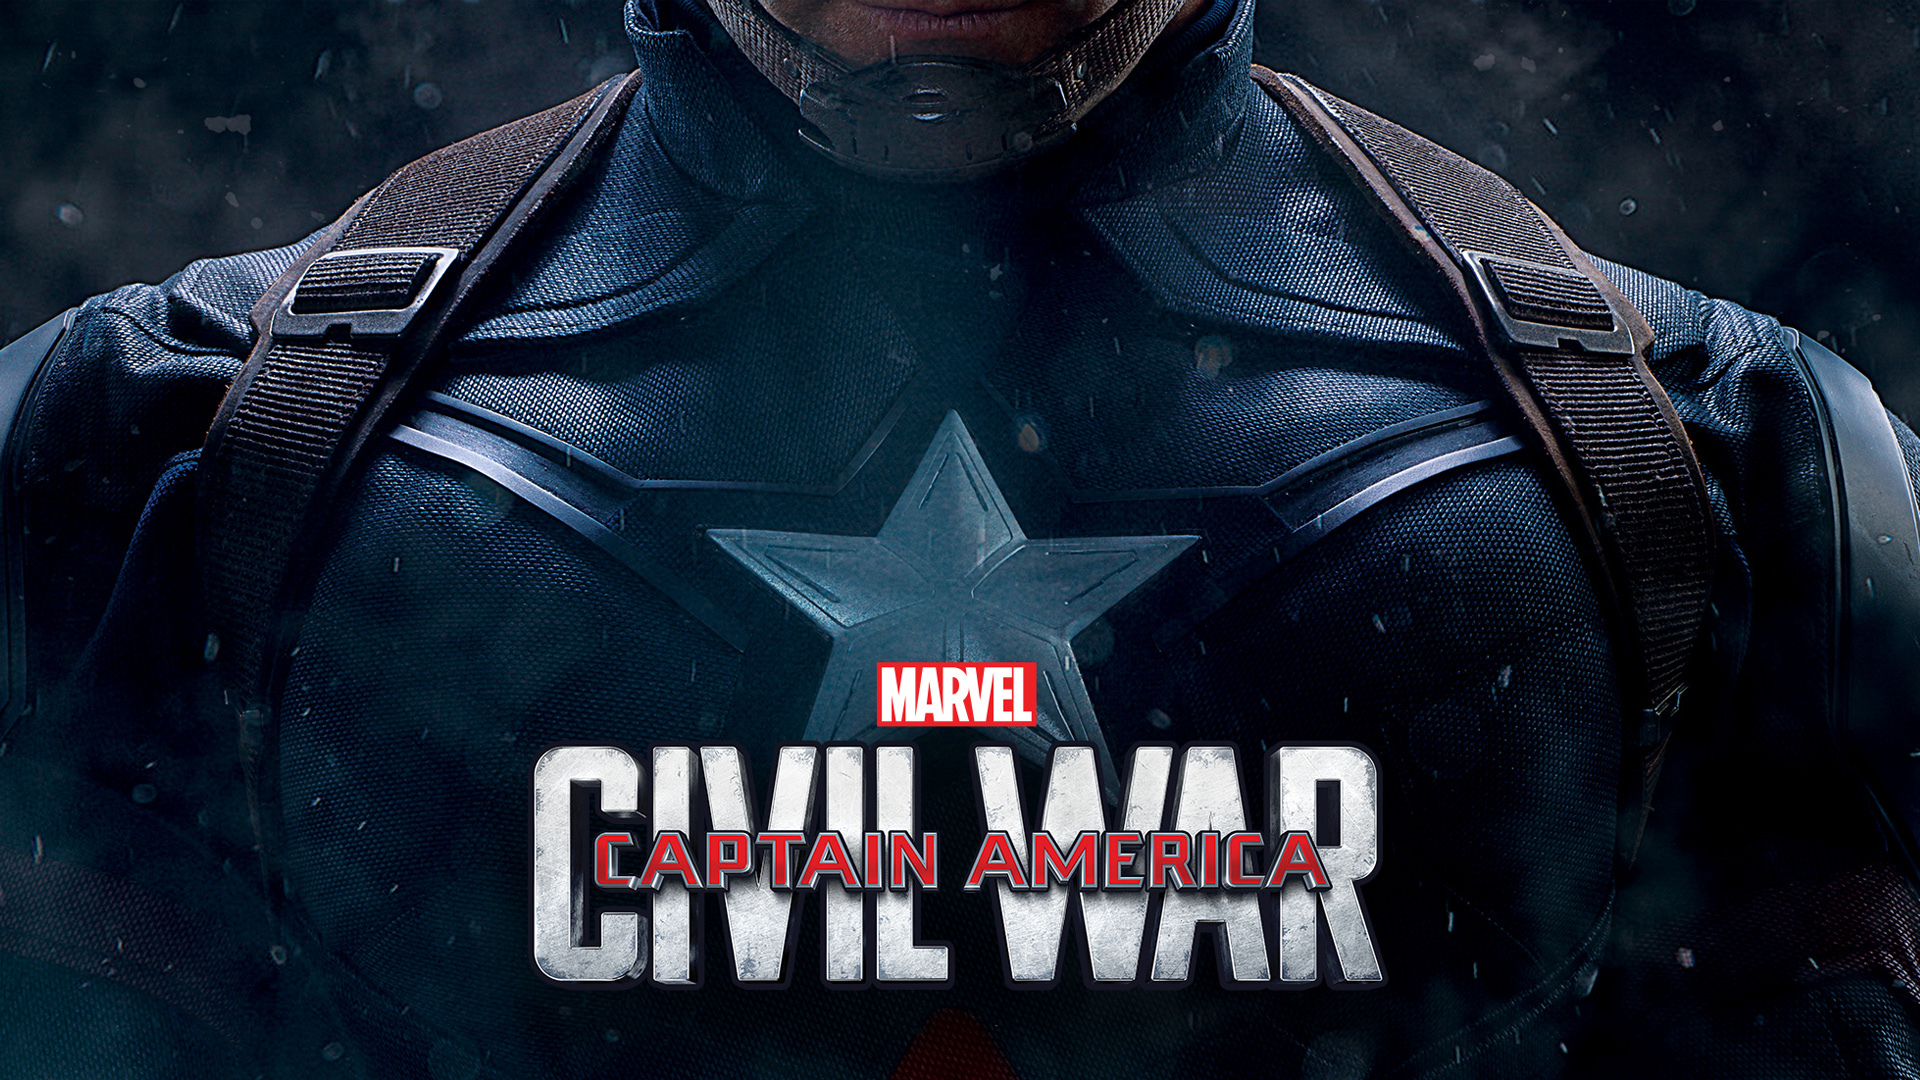 Captain America Civil War Images Capitan America Civil War